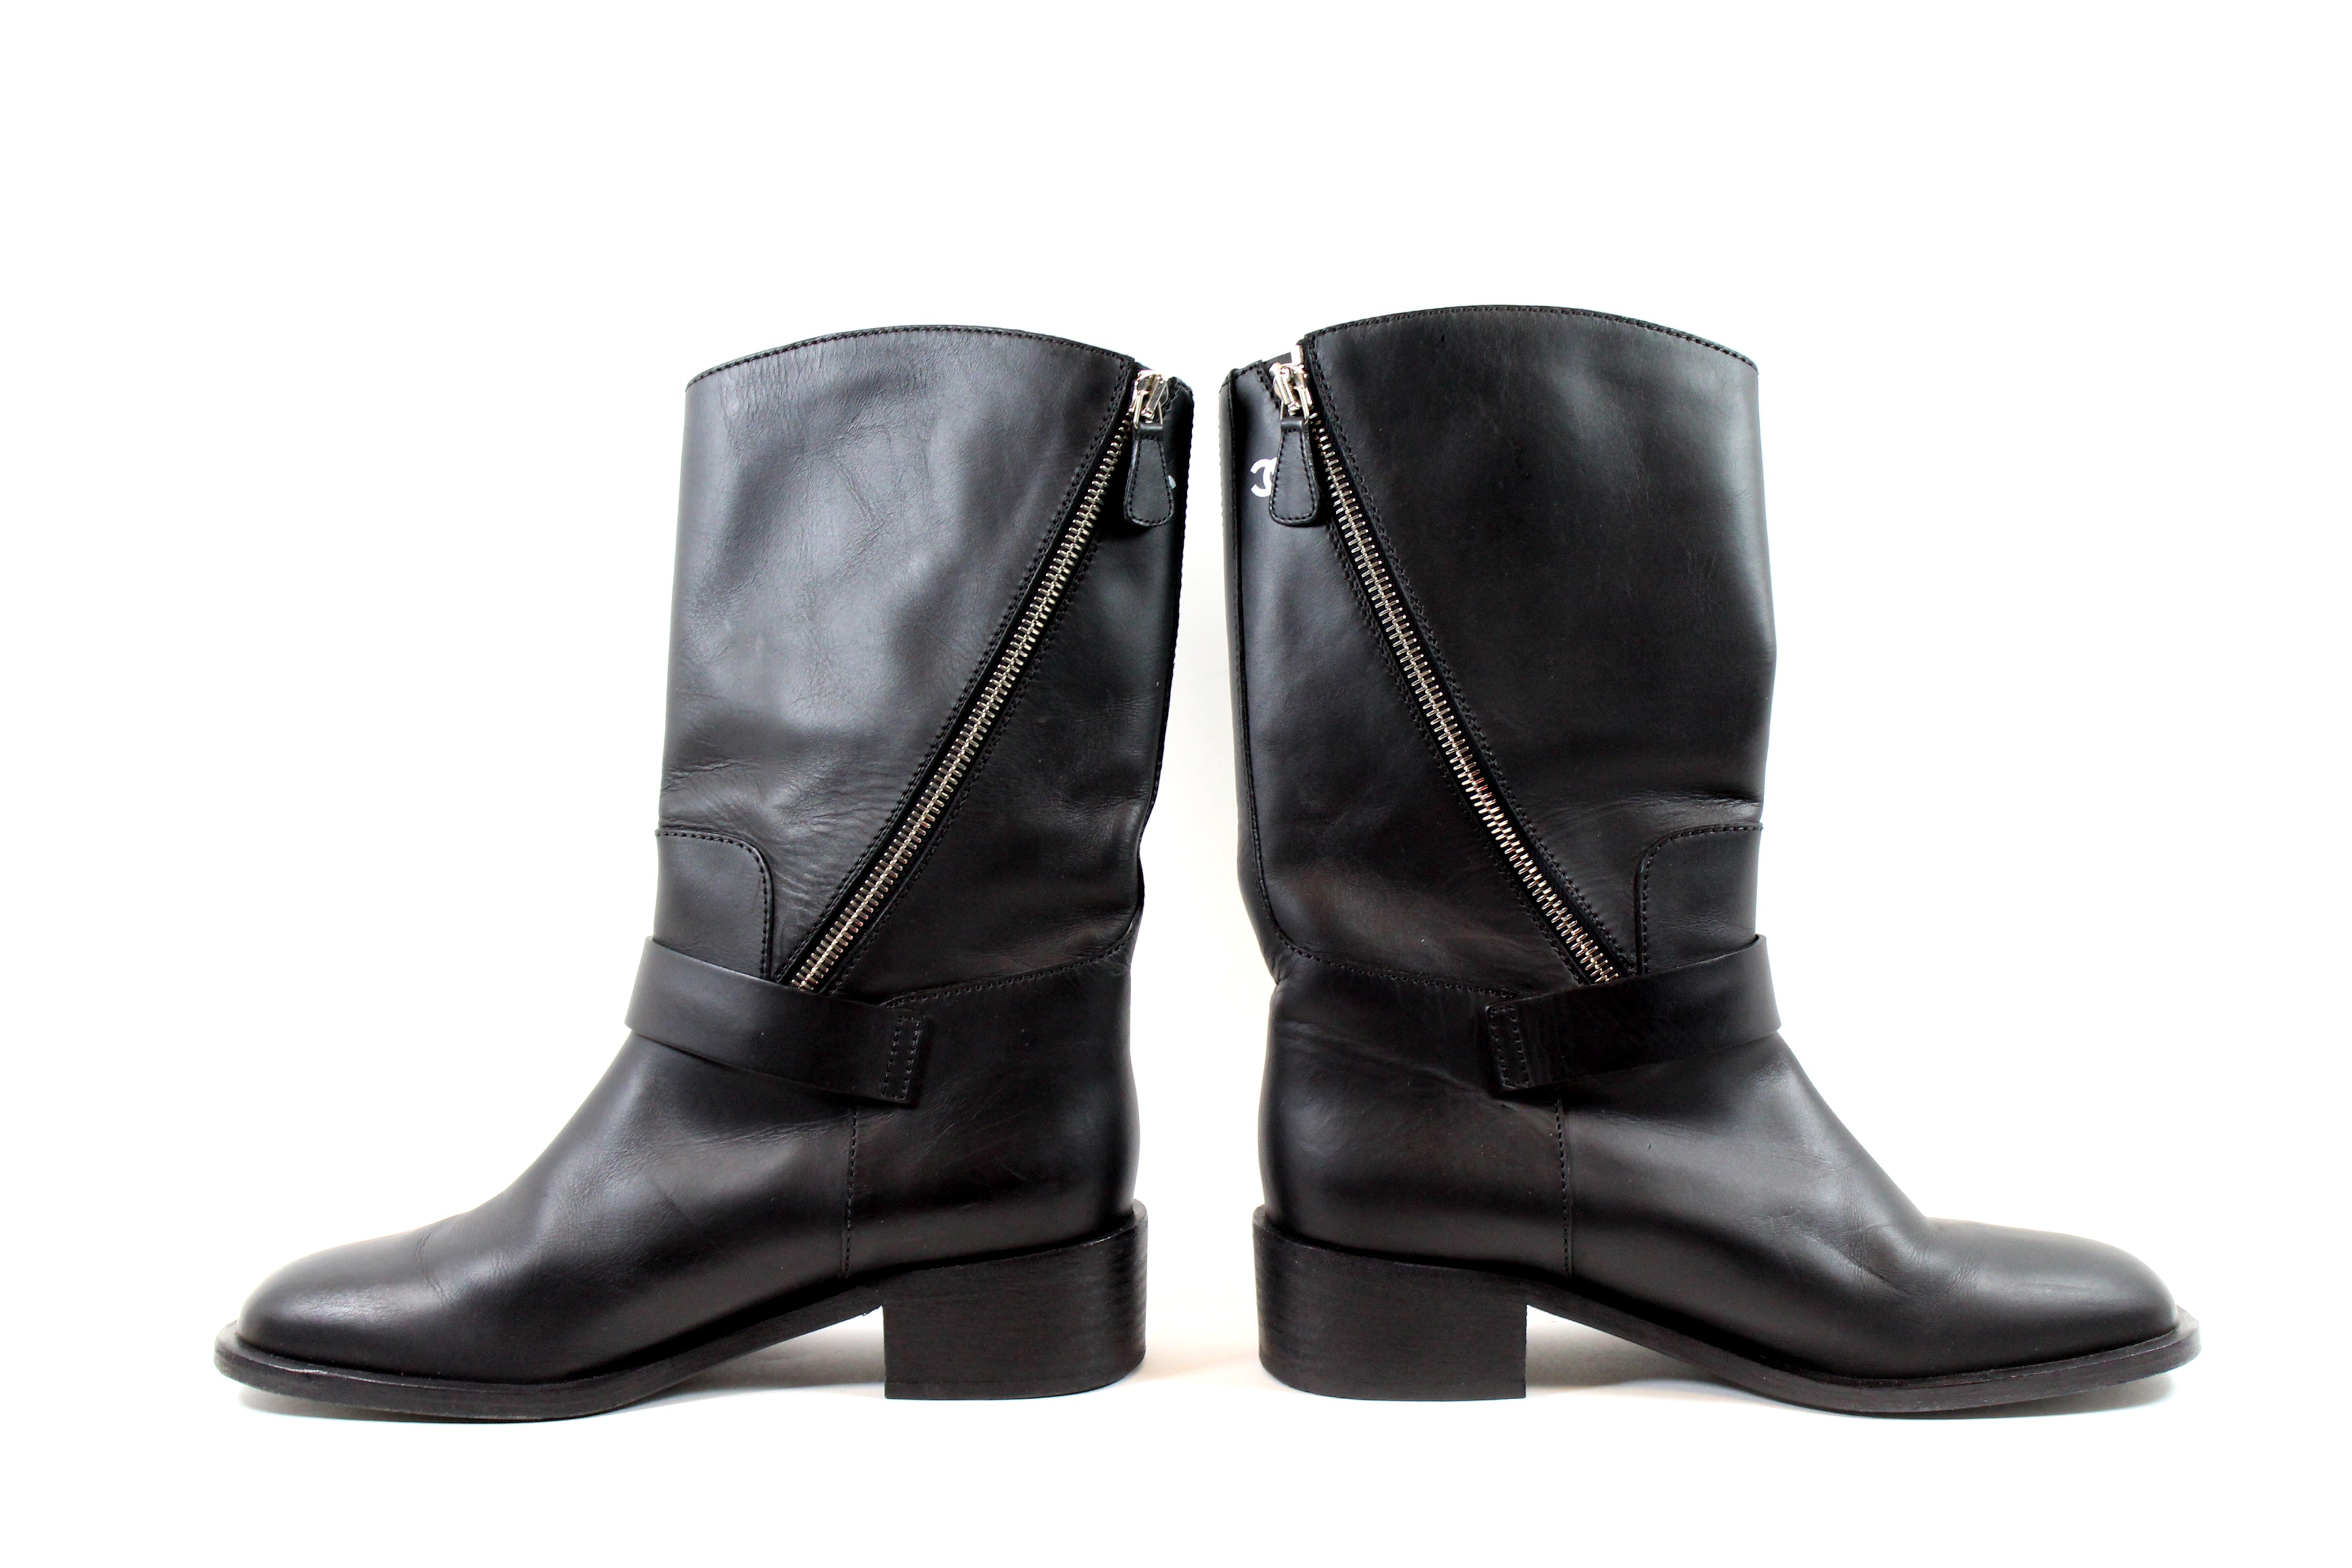 W9Tdk6nUhC Patent Leather Buckled Boots dhGDjwUs